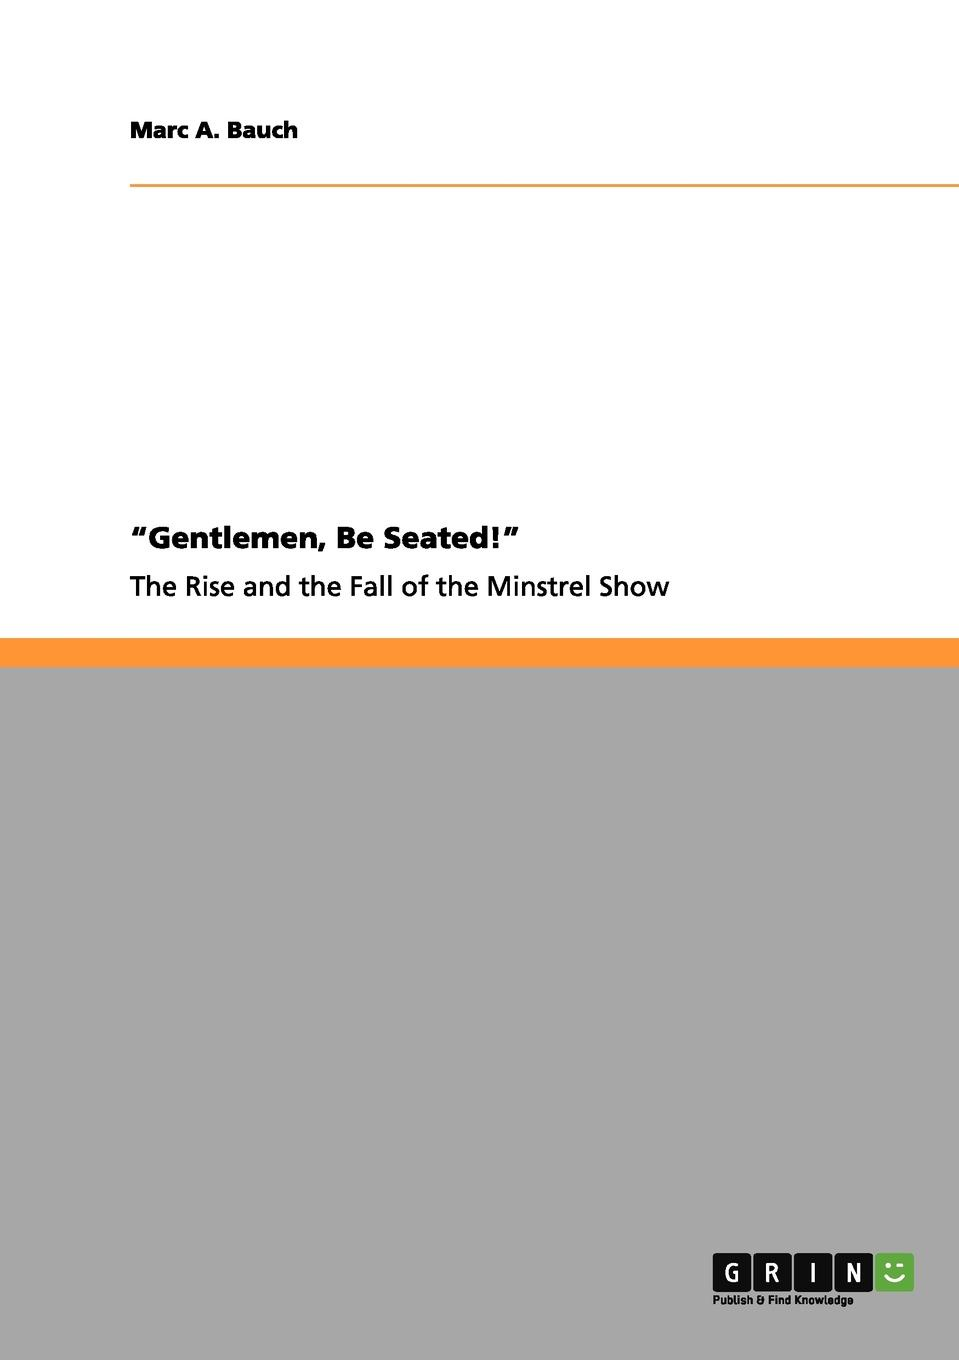 Marc A. Bauch Gentlemen, Be Seated. The Rise and Fall of the Minstrel Show james beattie the minstrel or the progress of genius